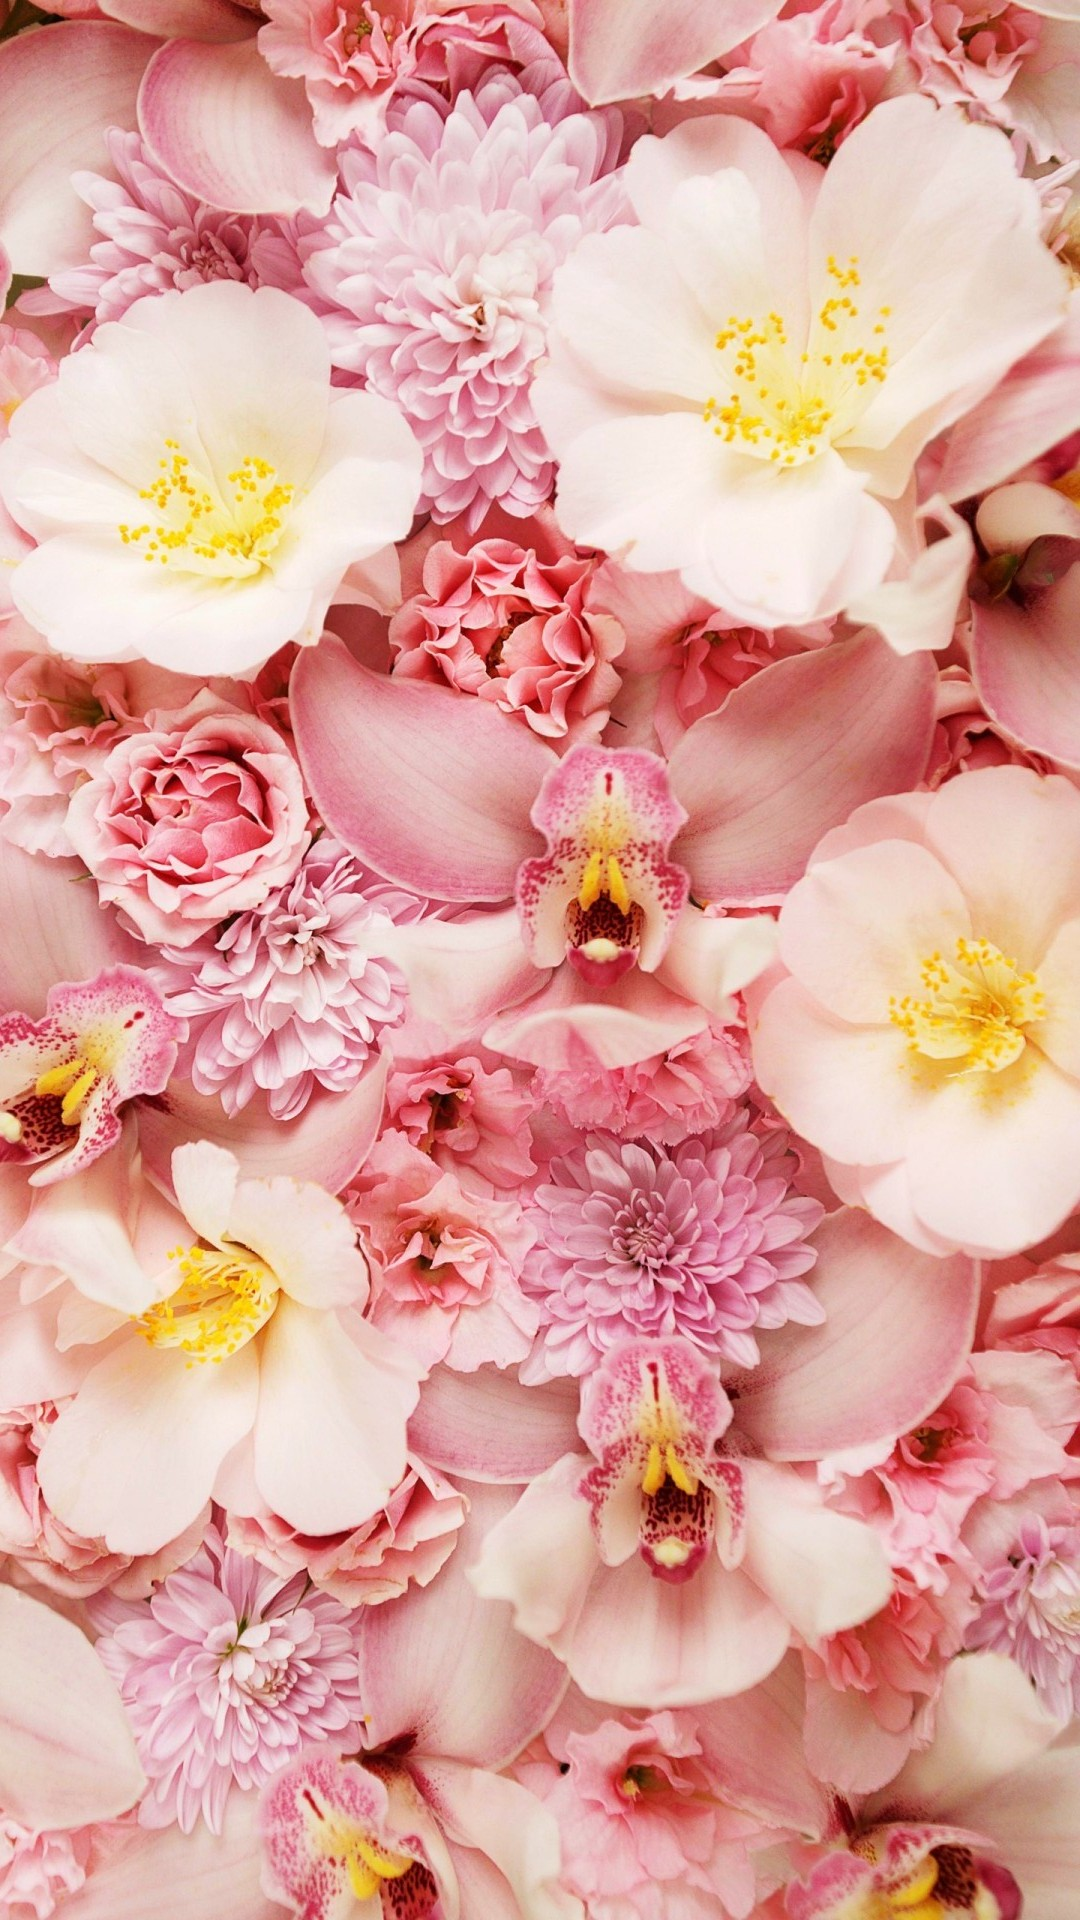 Pink Flower Phone Backgrounds 2020 Cute Wallpapers 1080x1920